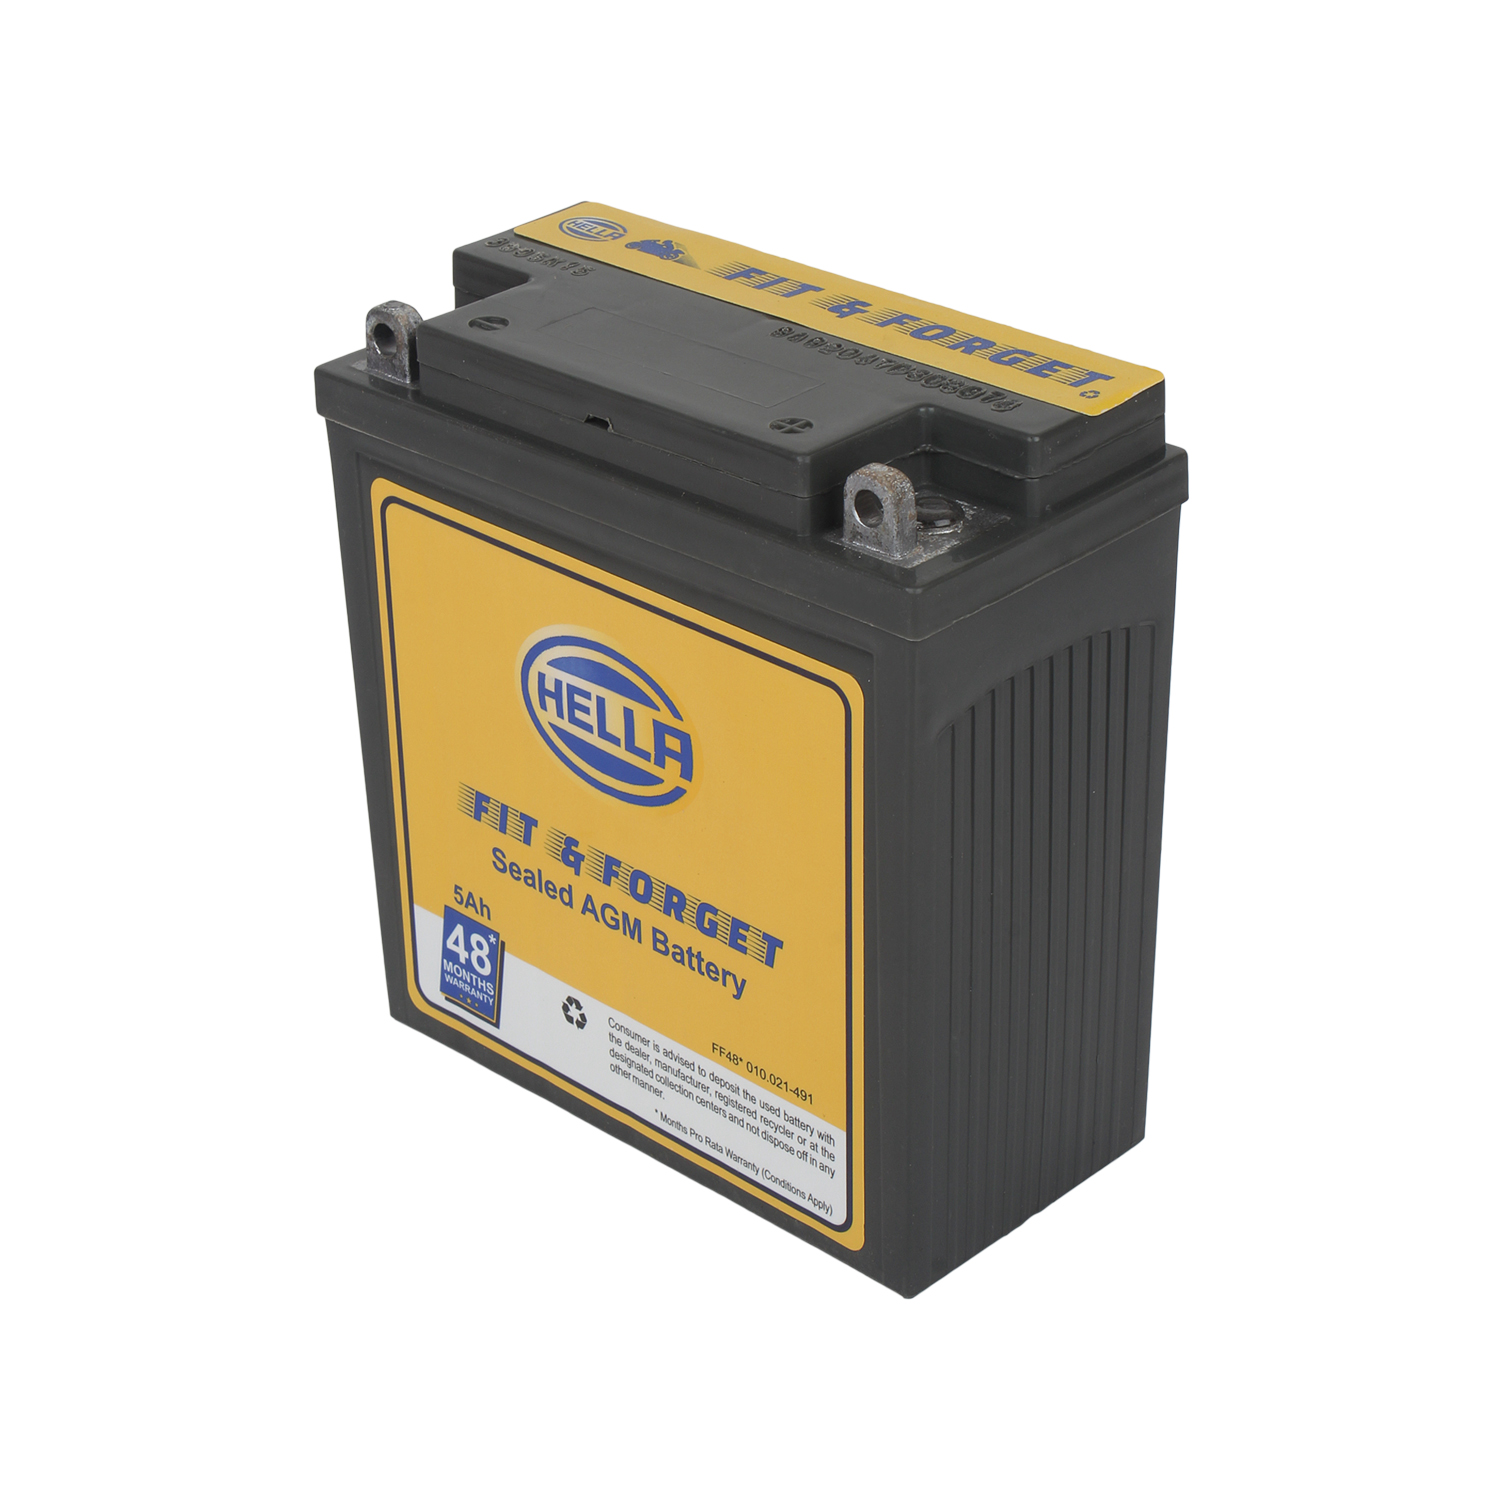 HELLA 010021491 Battery Fit N Forget 48* 5 AH